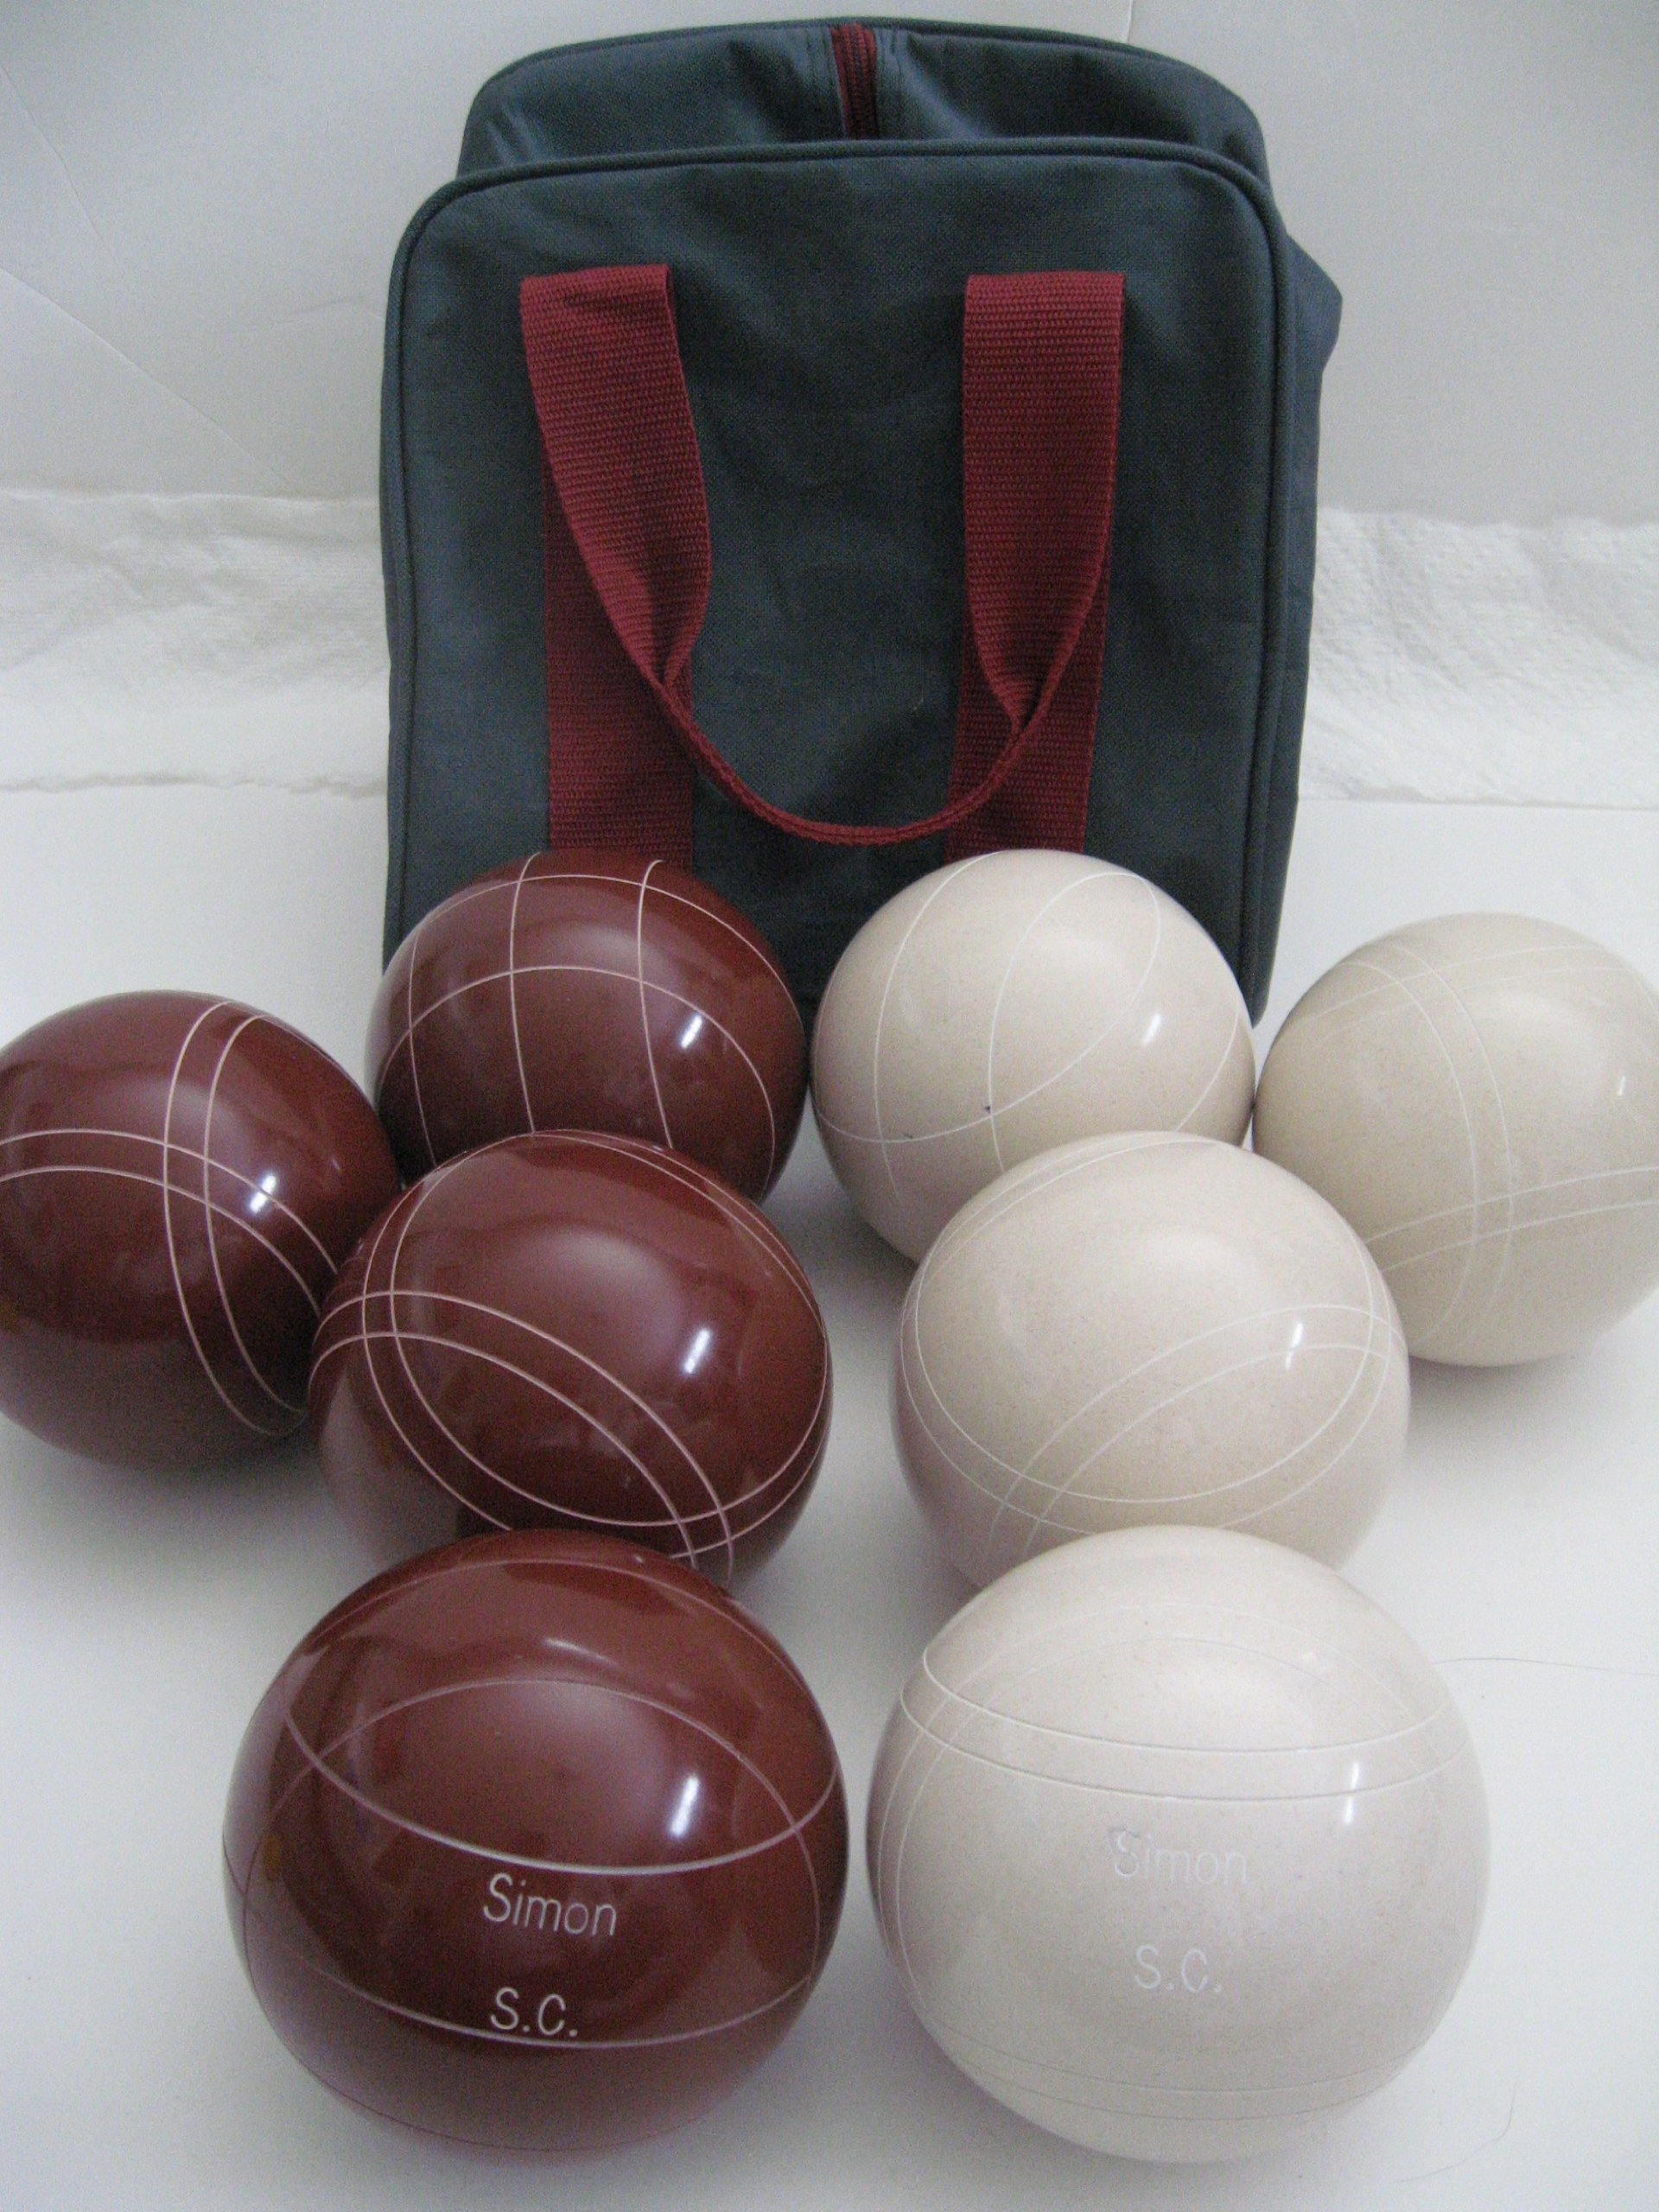 Premium Quality Engraved Bocce Package - 110mm Epco Red and White Balls with Engraving [Misc.]